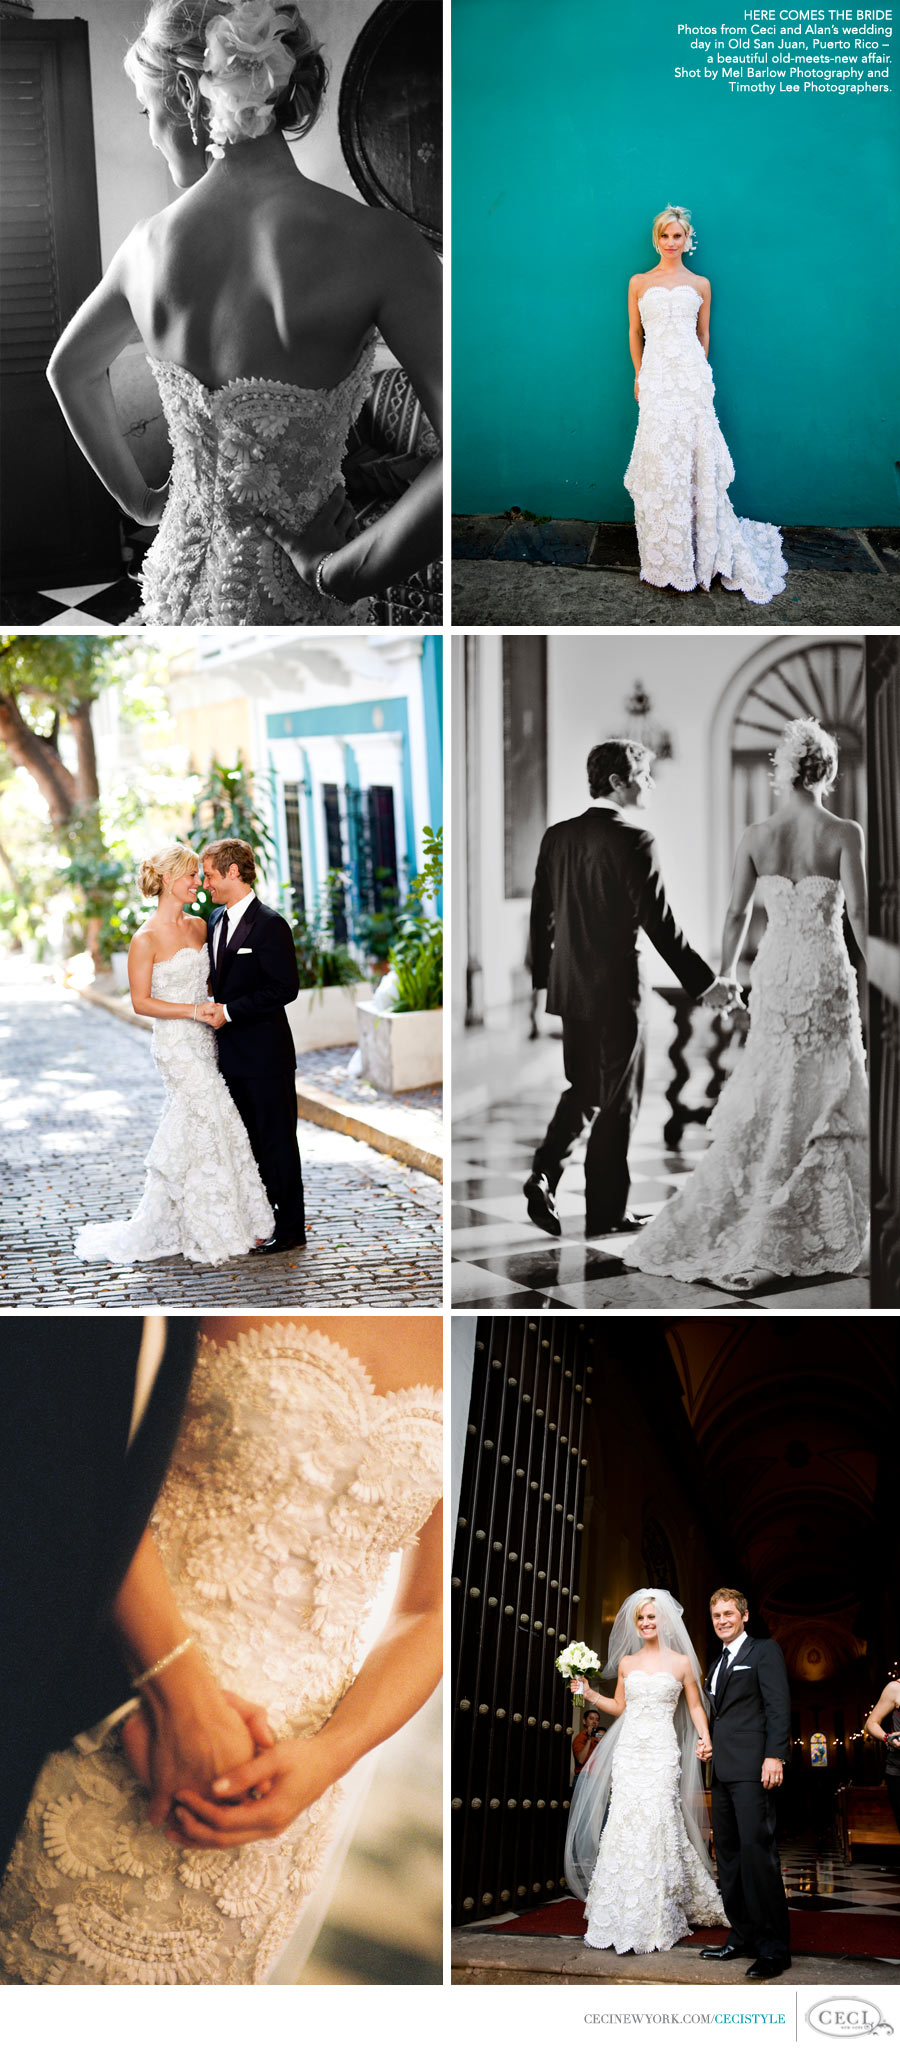 Ceci Johnson of Ceci New York - HERE COMES THE BRIDE: Photos from Ceci and Alan's wedding day in Old San Juan, Puerto Rico – a beautiful old-meets-new affair.